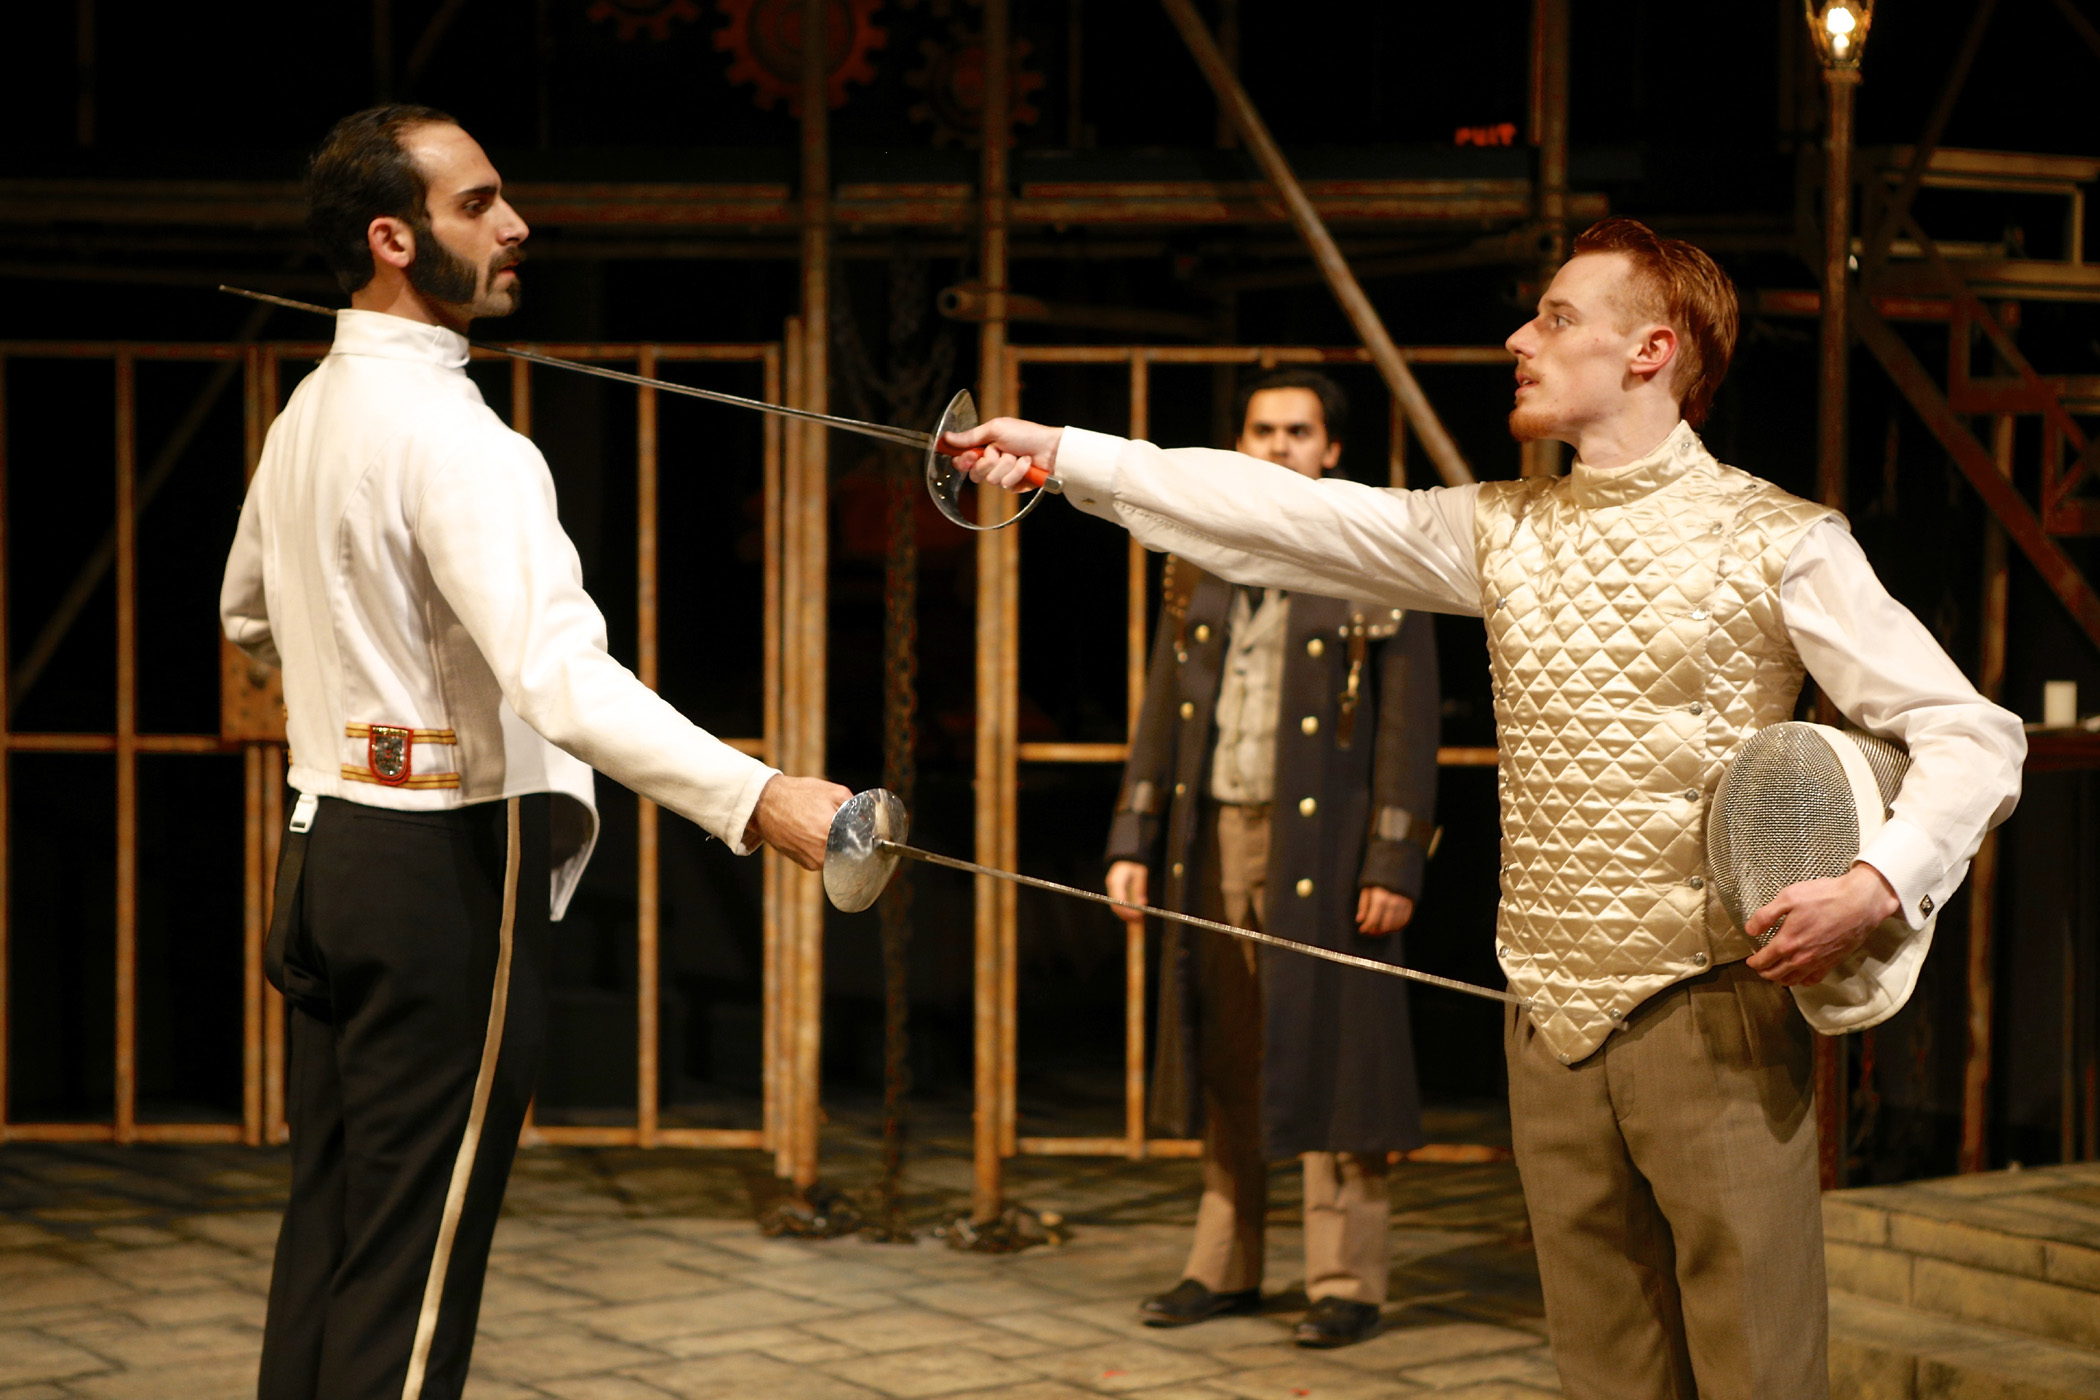 Alen Ghavami and Ezekiel Edmonds in the SU Drama production of William Shakespeare's Measure for Measure. Photo by Michael Davis.